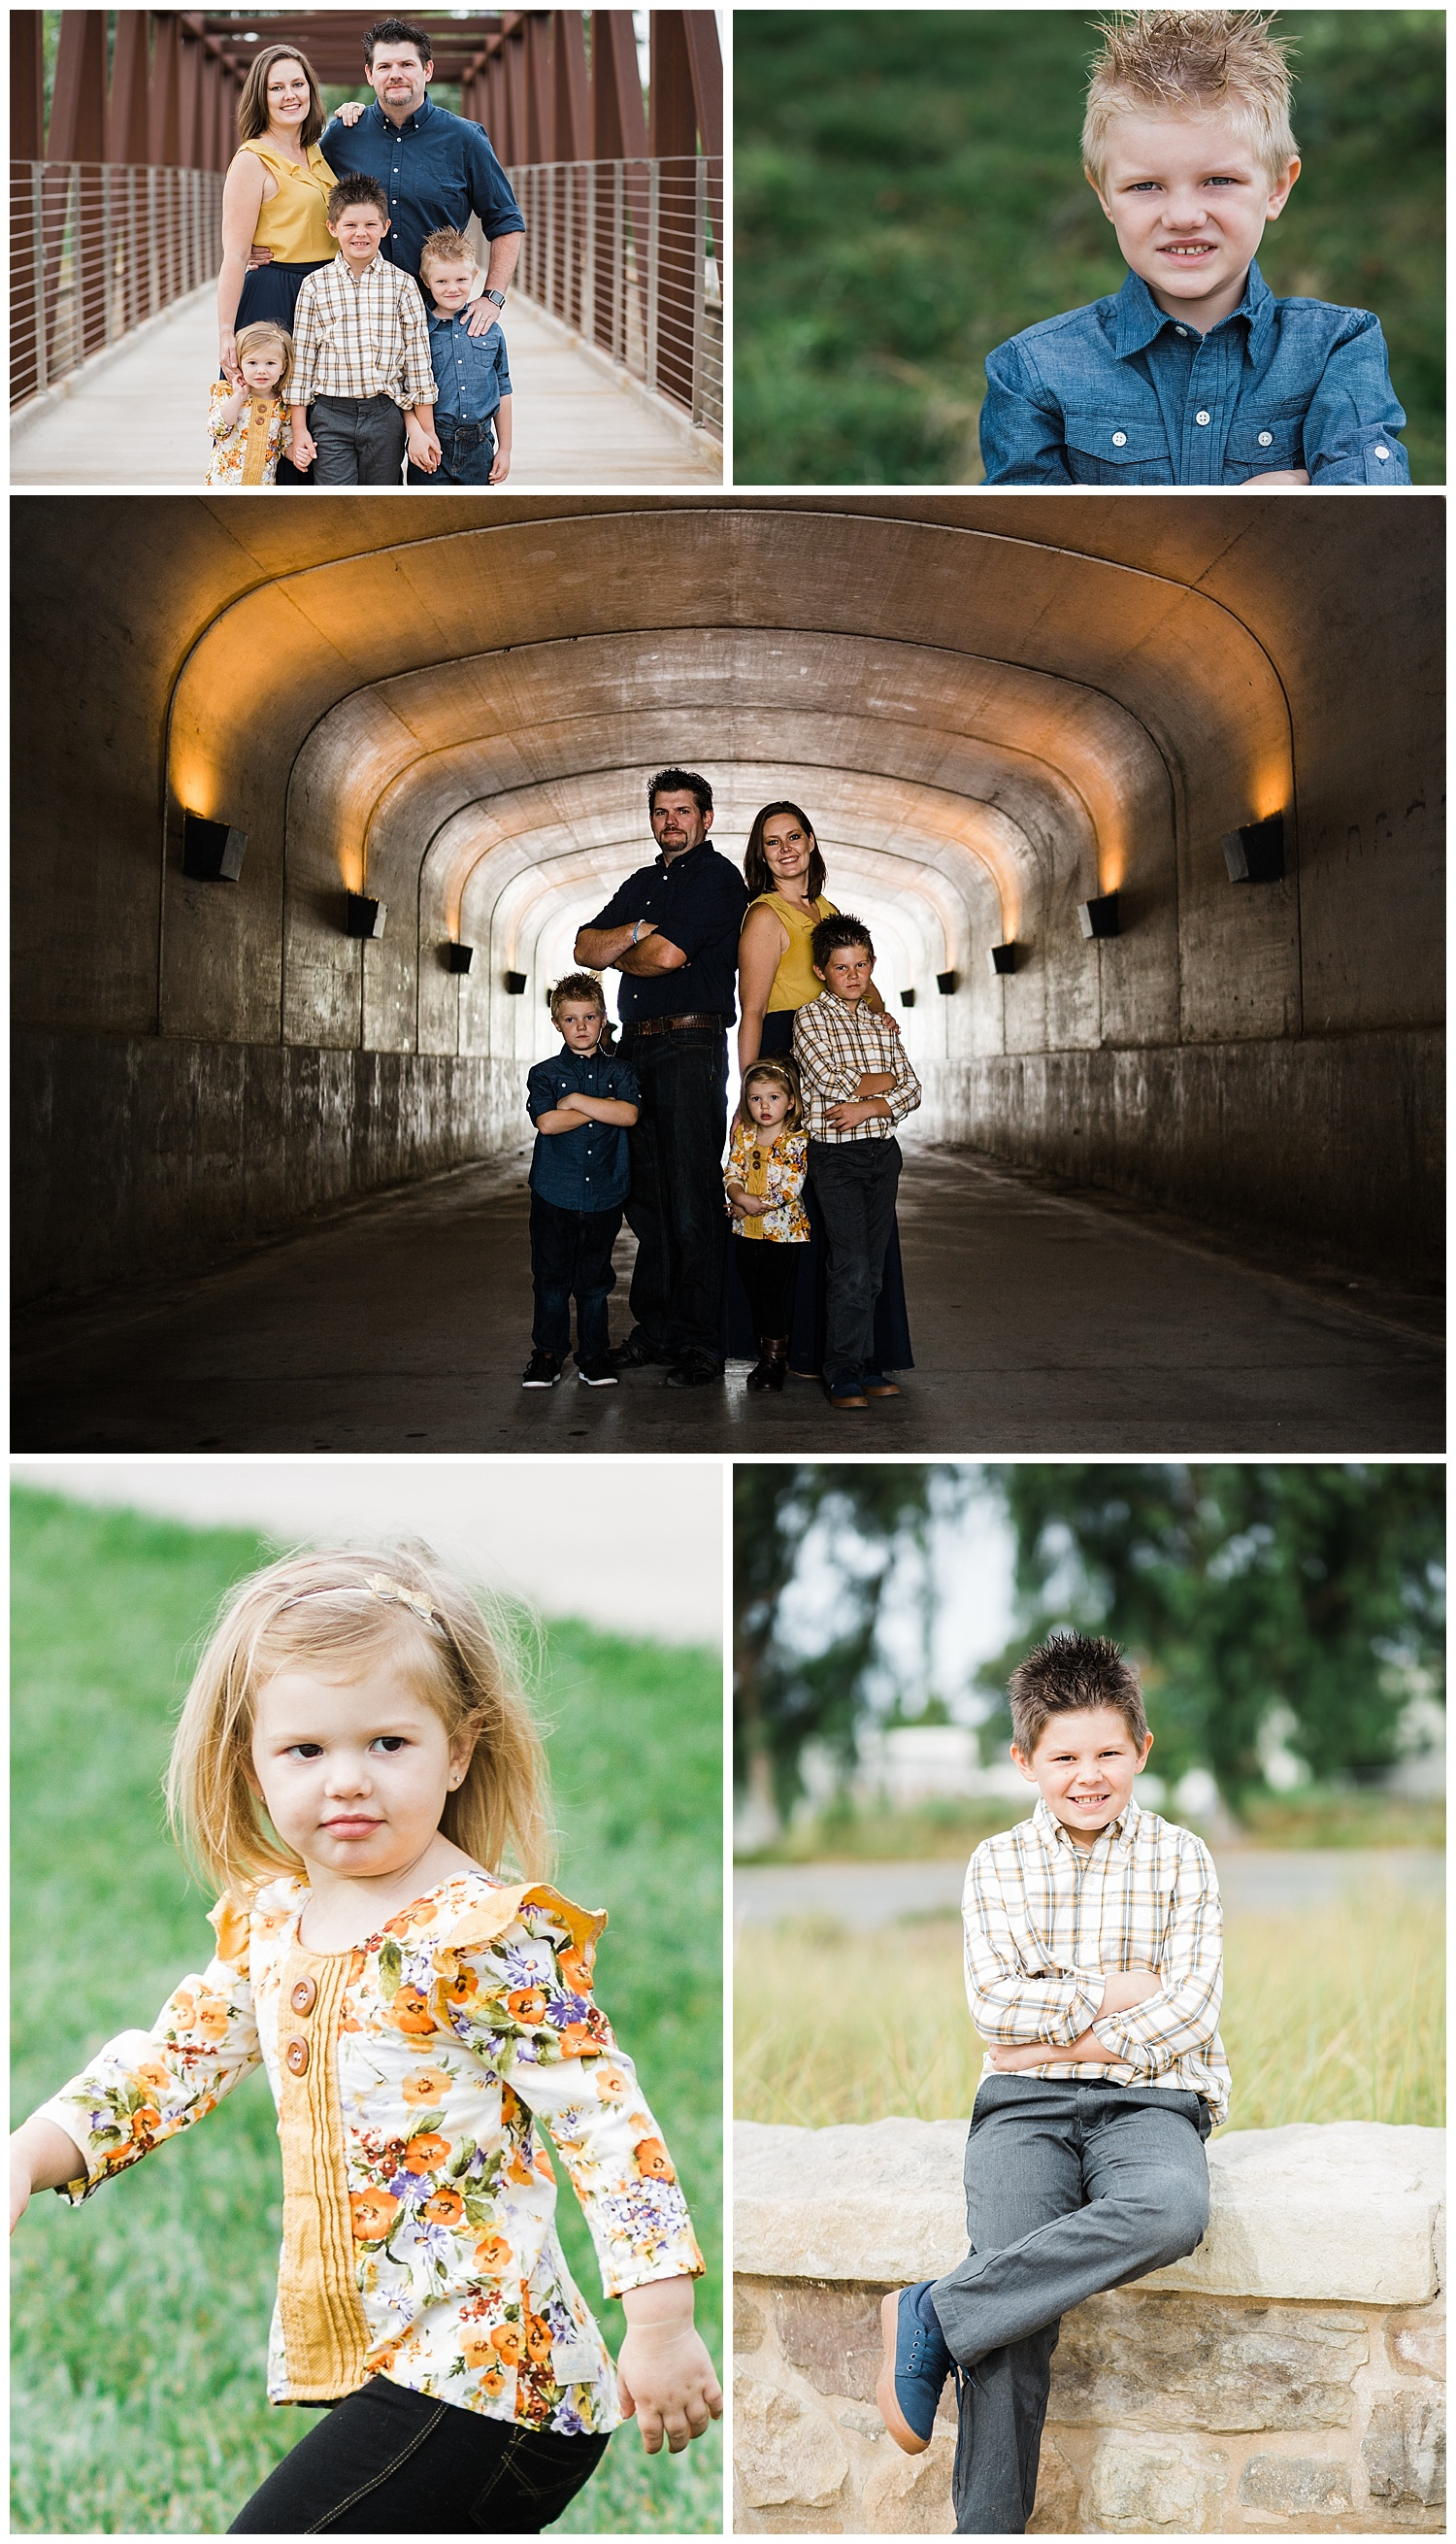 Kari Webb Photography | Brady Family Holiday Session | Irvine session on Bridge and in tunnel